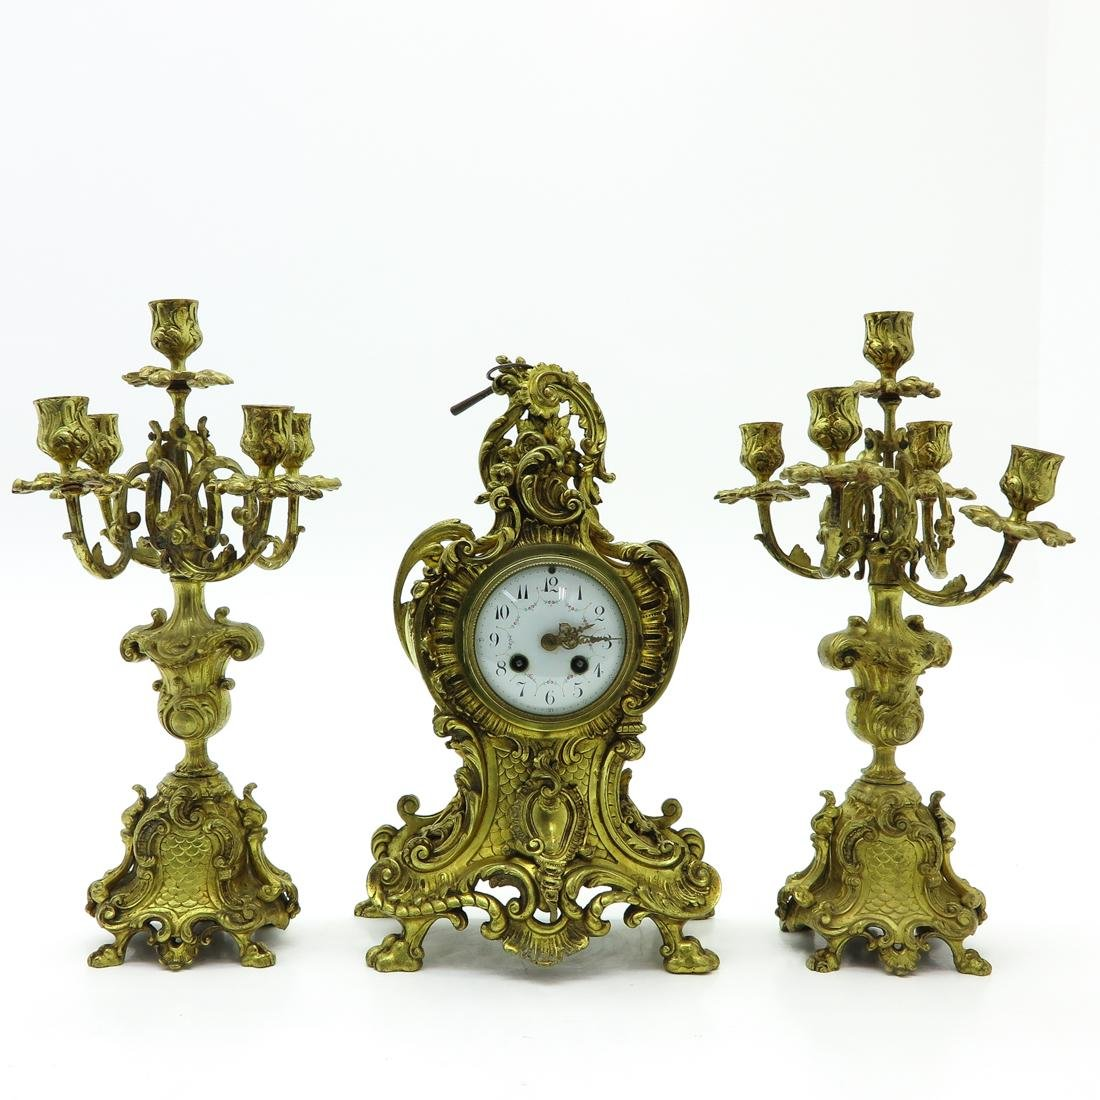 3 Piece Clock Set